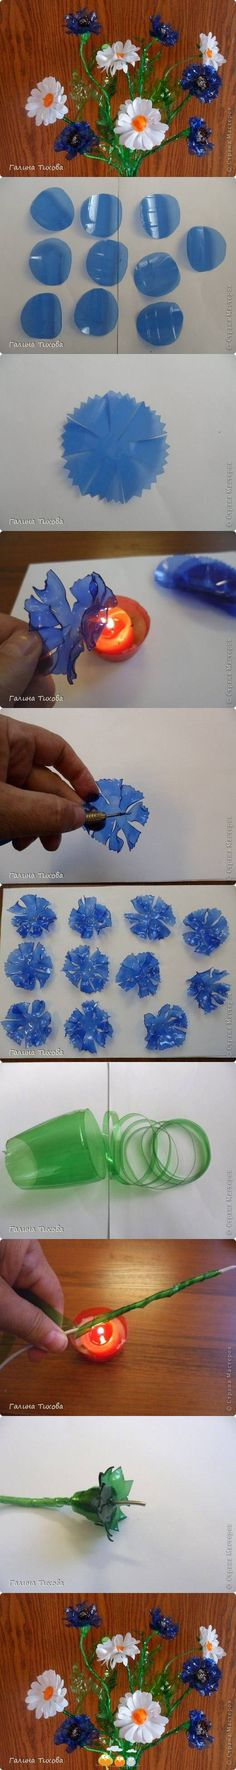 recycled flowers Use this idea for making colorful, light, water-resistant undersea creatures and plants